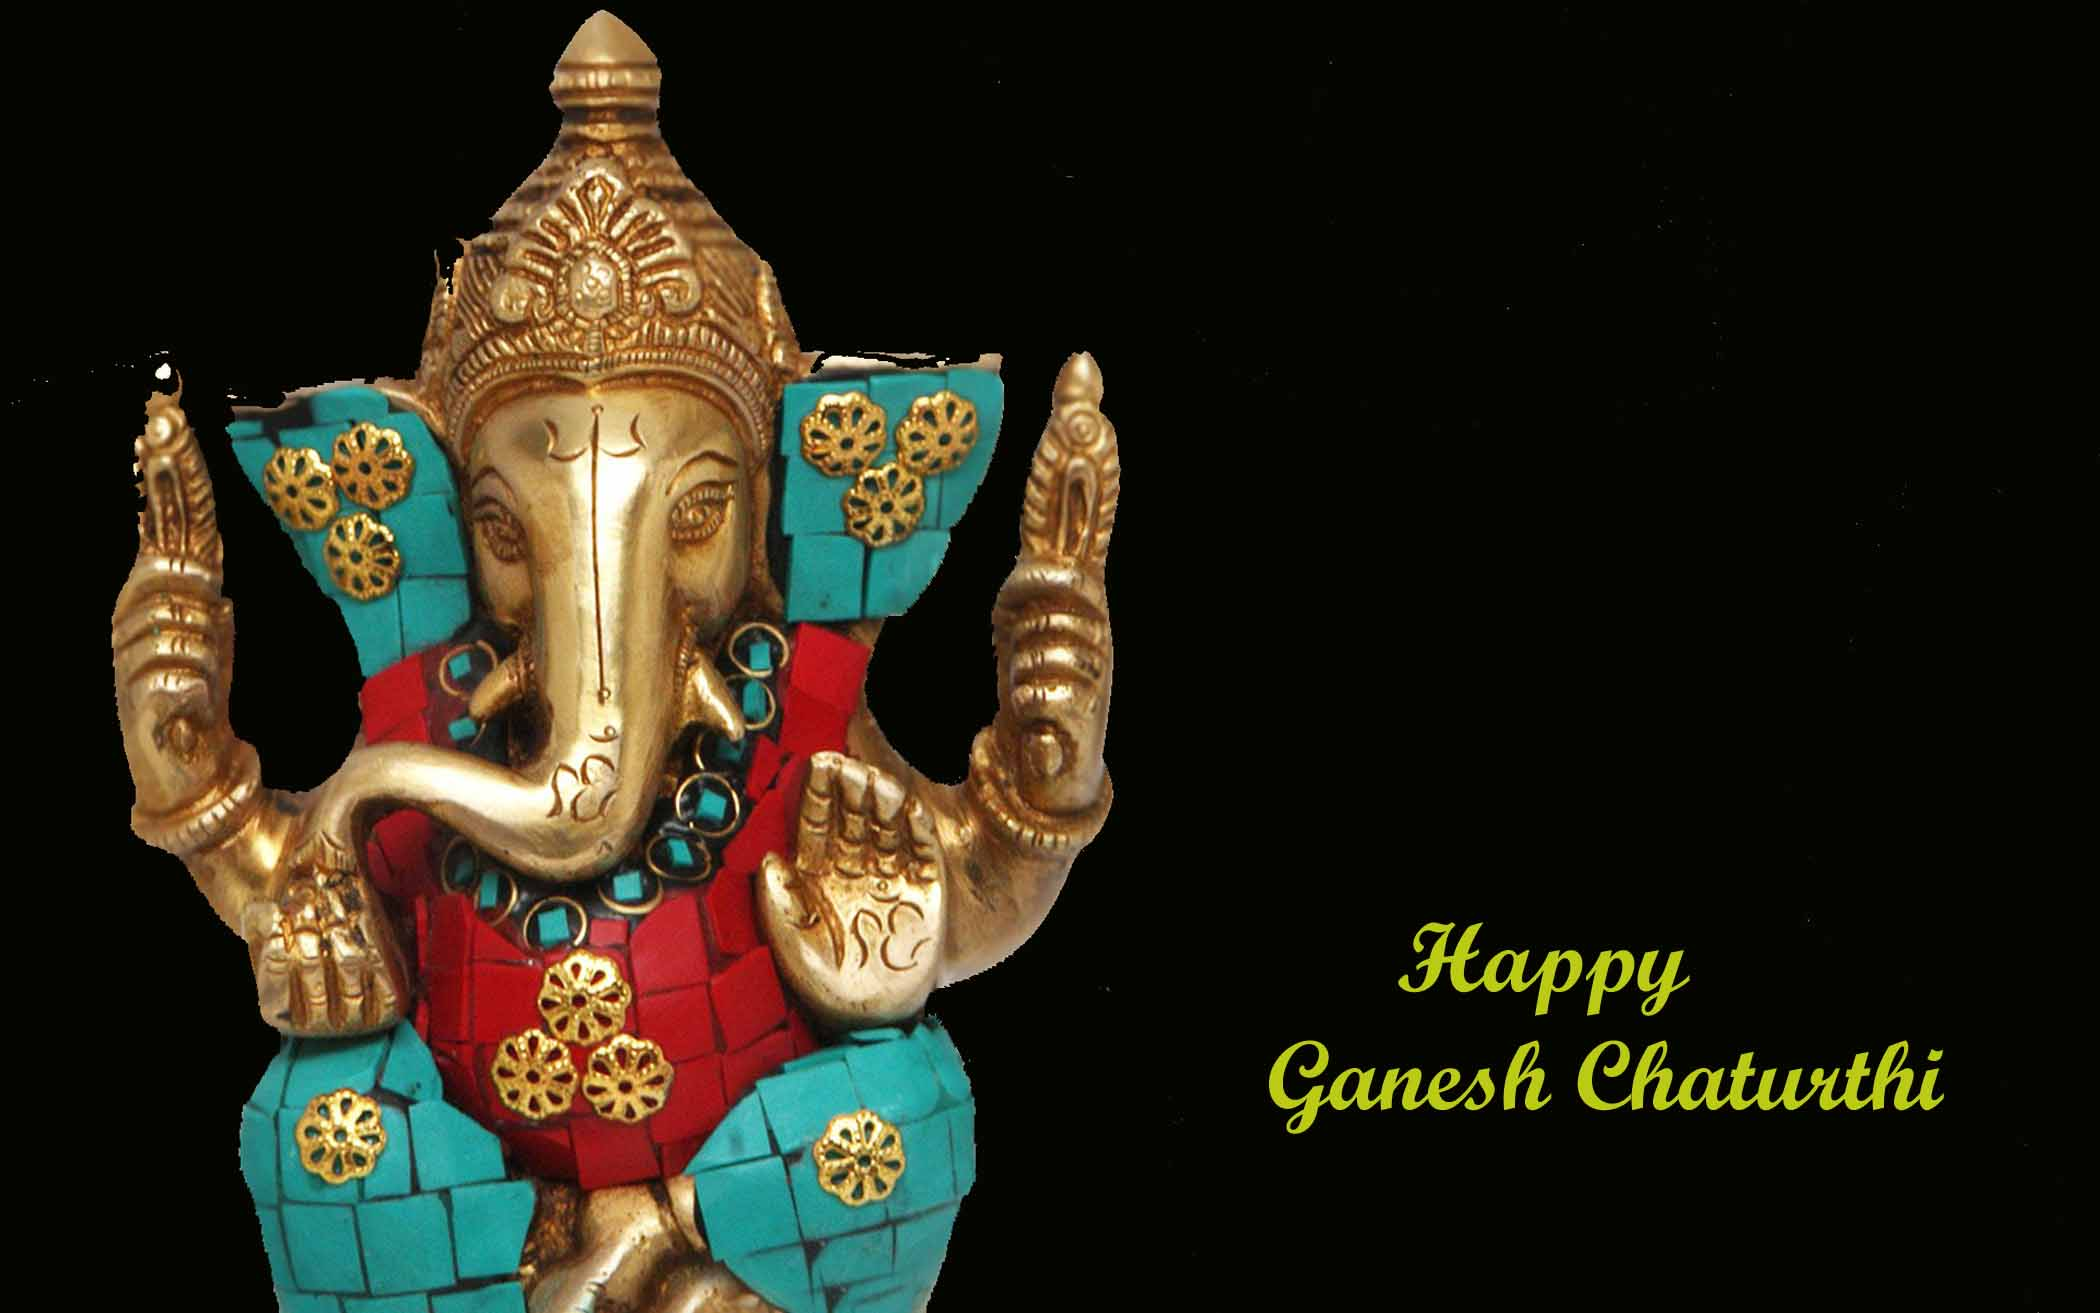 ganesh chaturthi hd images wallpapers photos free download